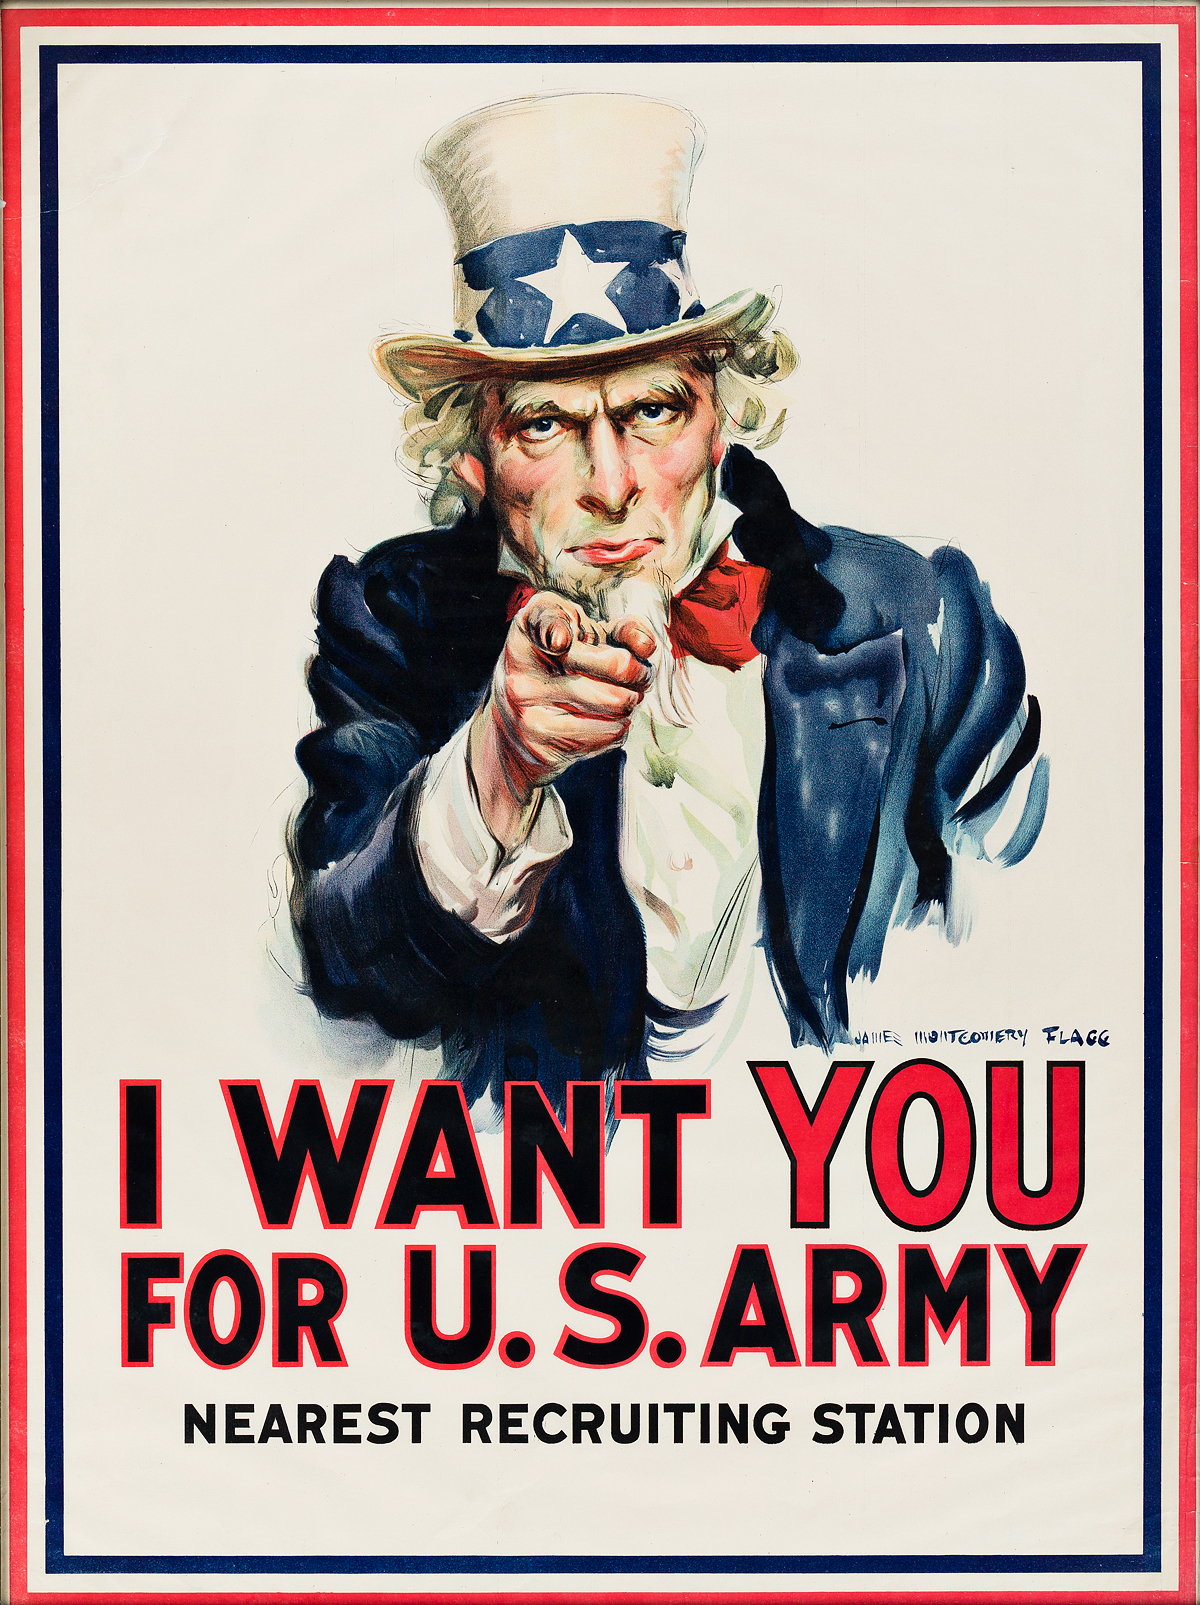 JAMES MONTGOMERY FLAGG (1870-1960). I WANT YOU FOR U.S. ARMY. 1917. 39x29 inches, 100x75 cm. Leslie-Judge Co., New York.